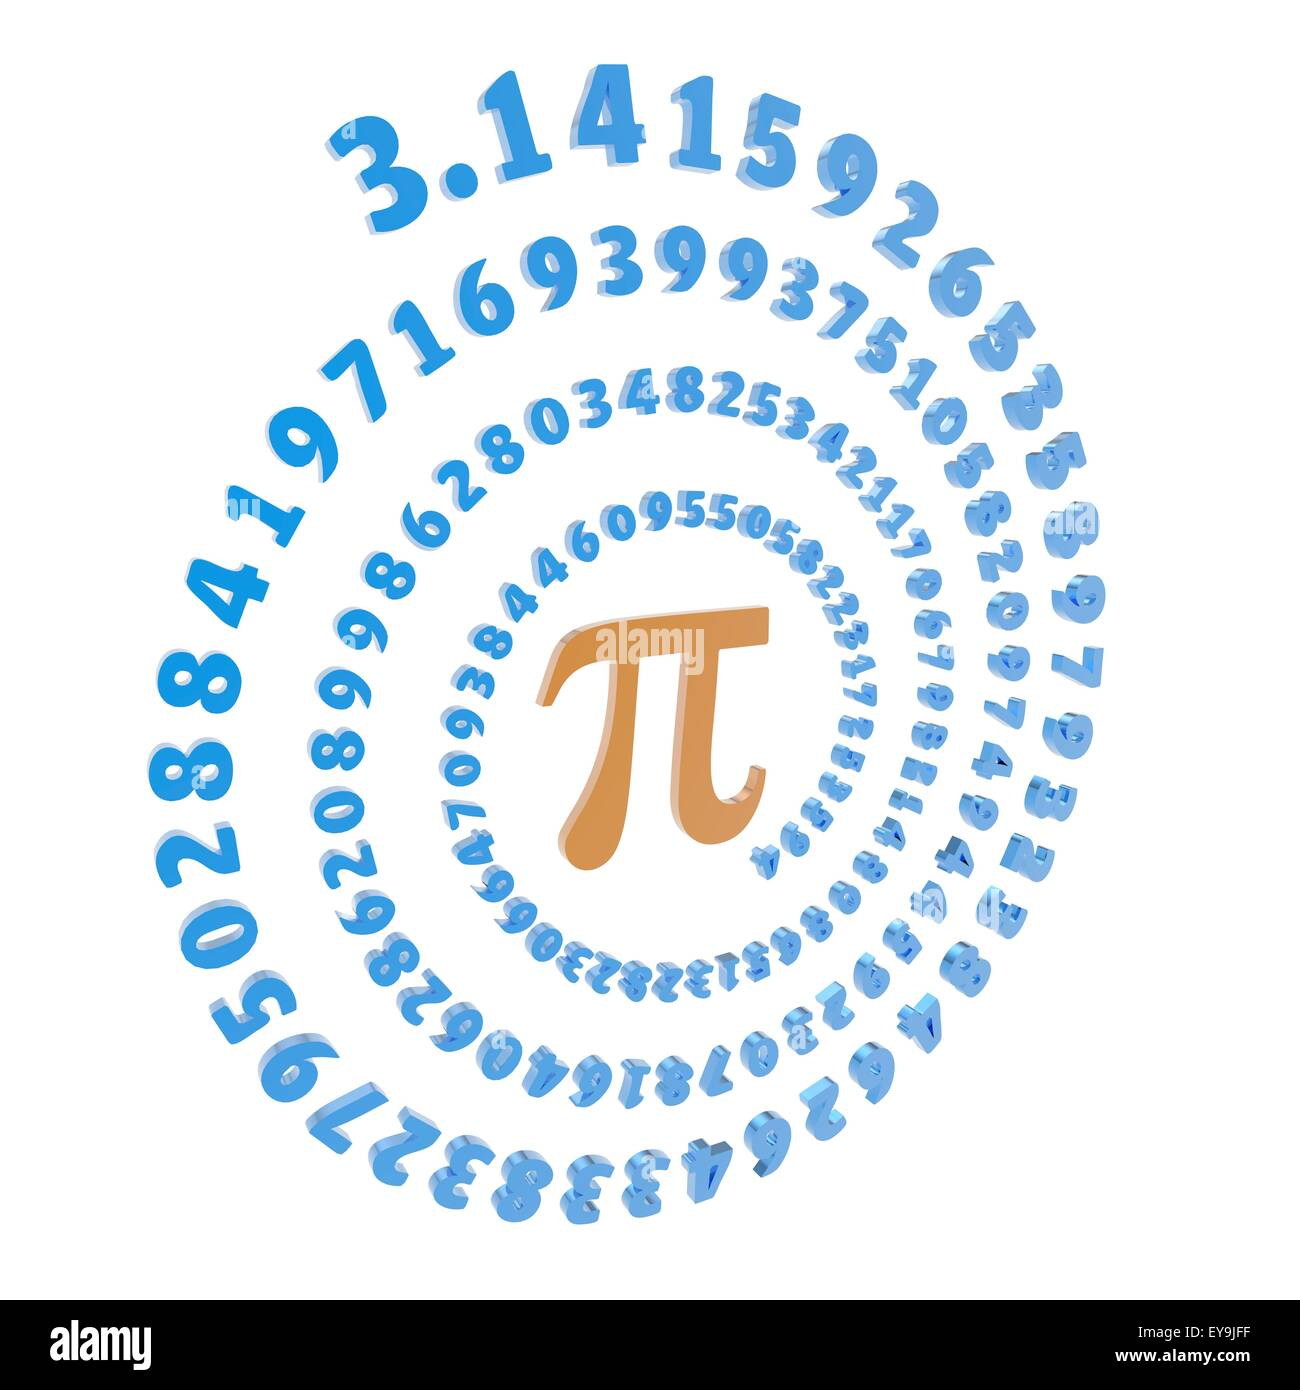 Greek letter pi stock photos greek letter pi stock images alamy pi greek letter orange is the symbol used in mathematics to represent a constant buycottarizona Images